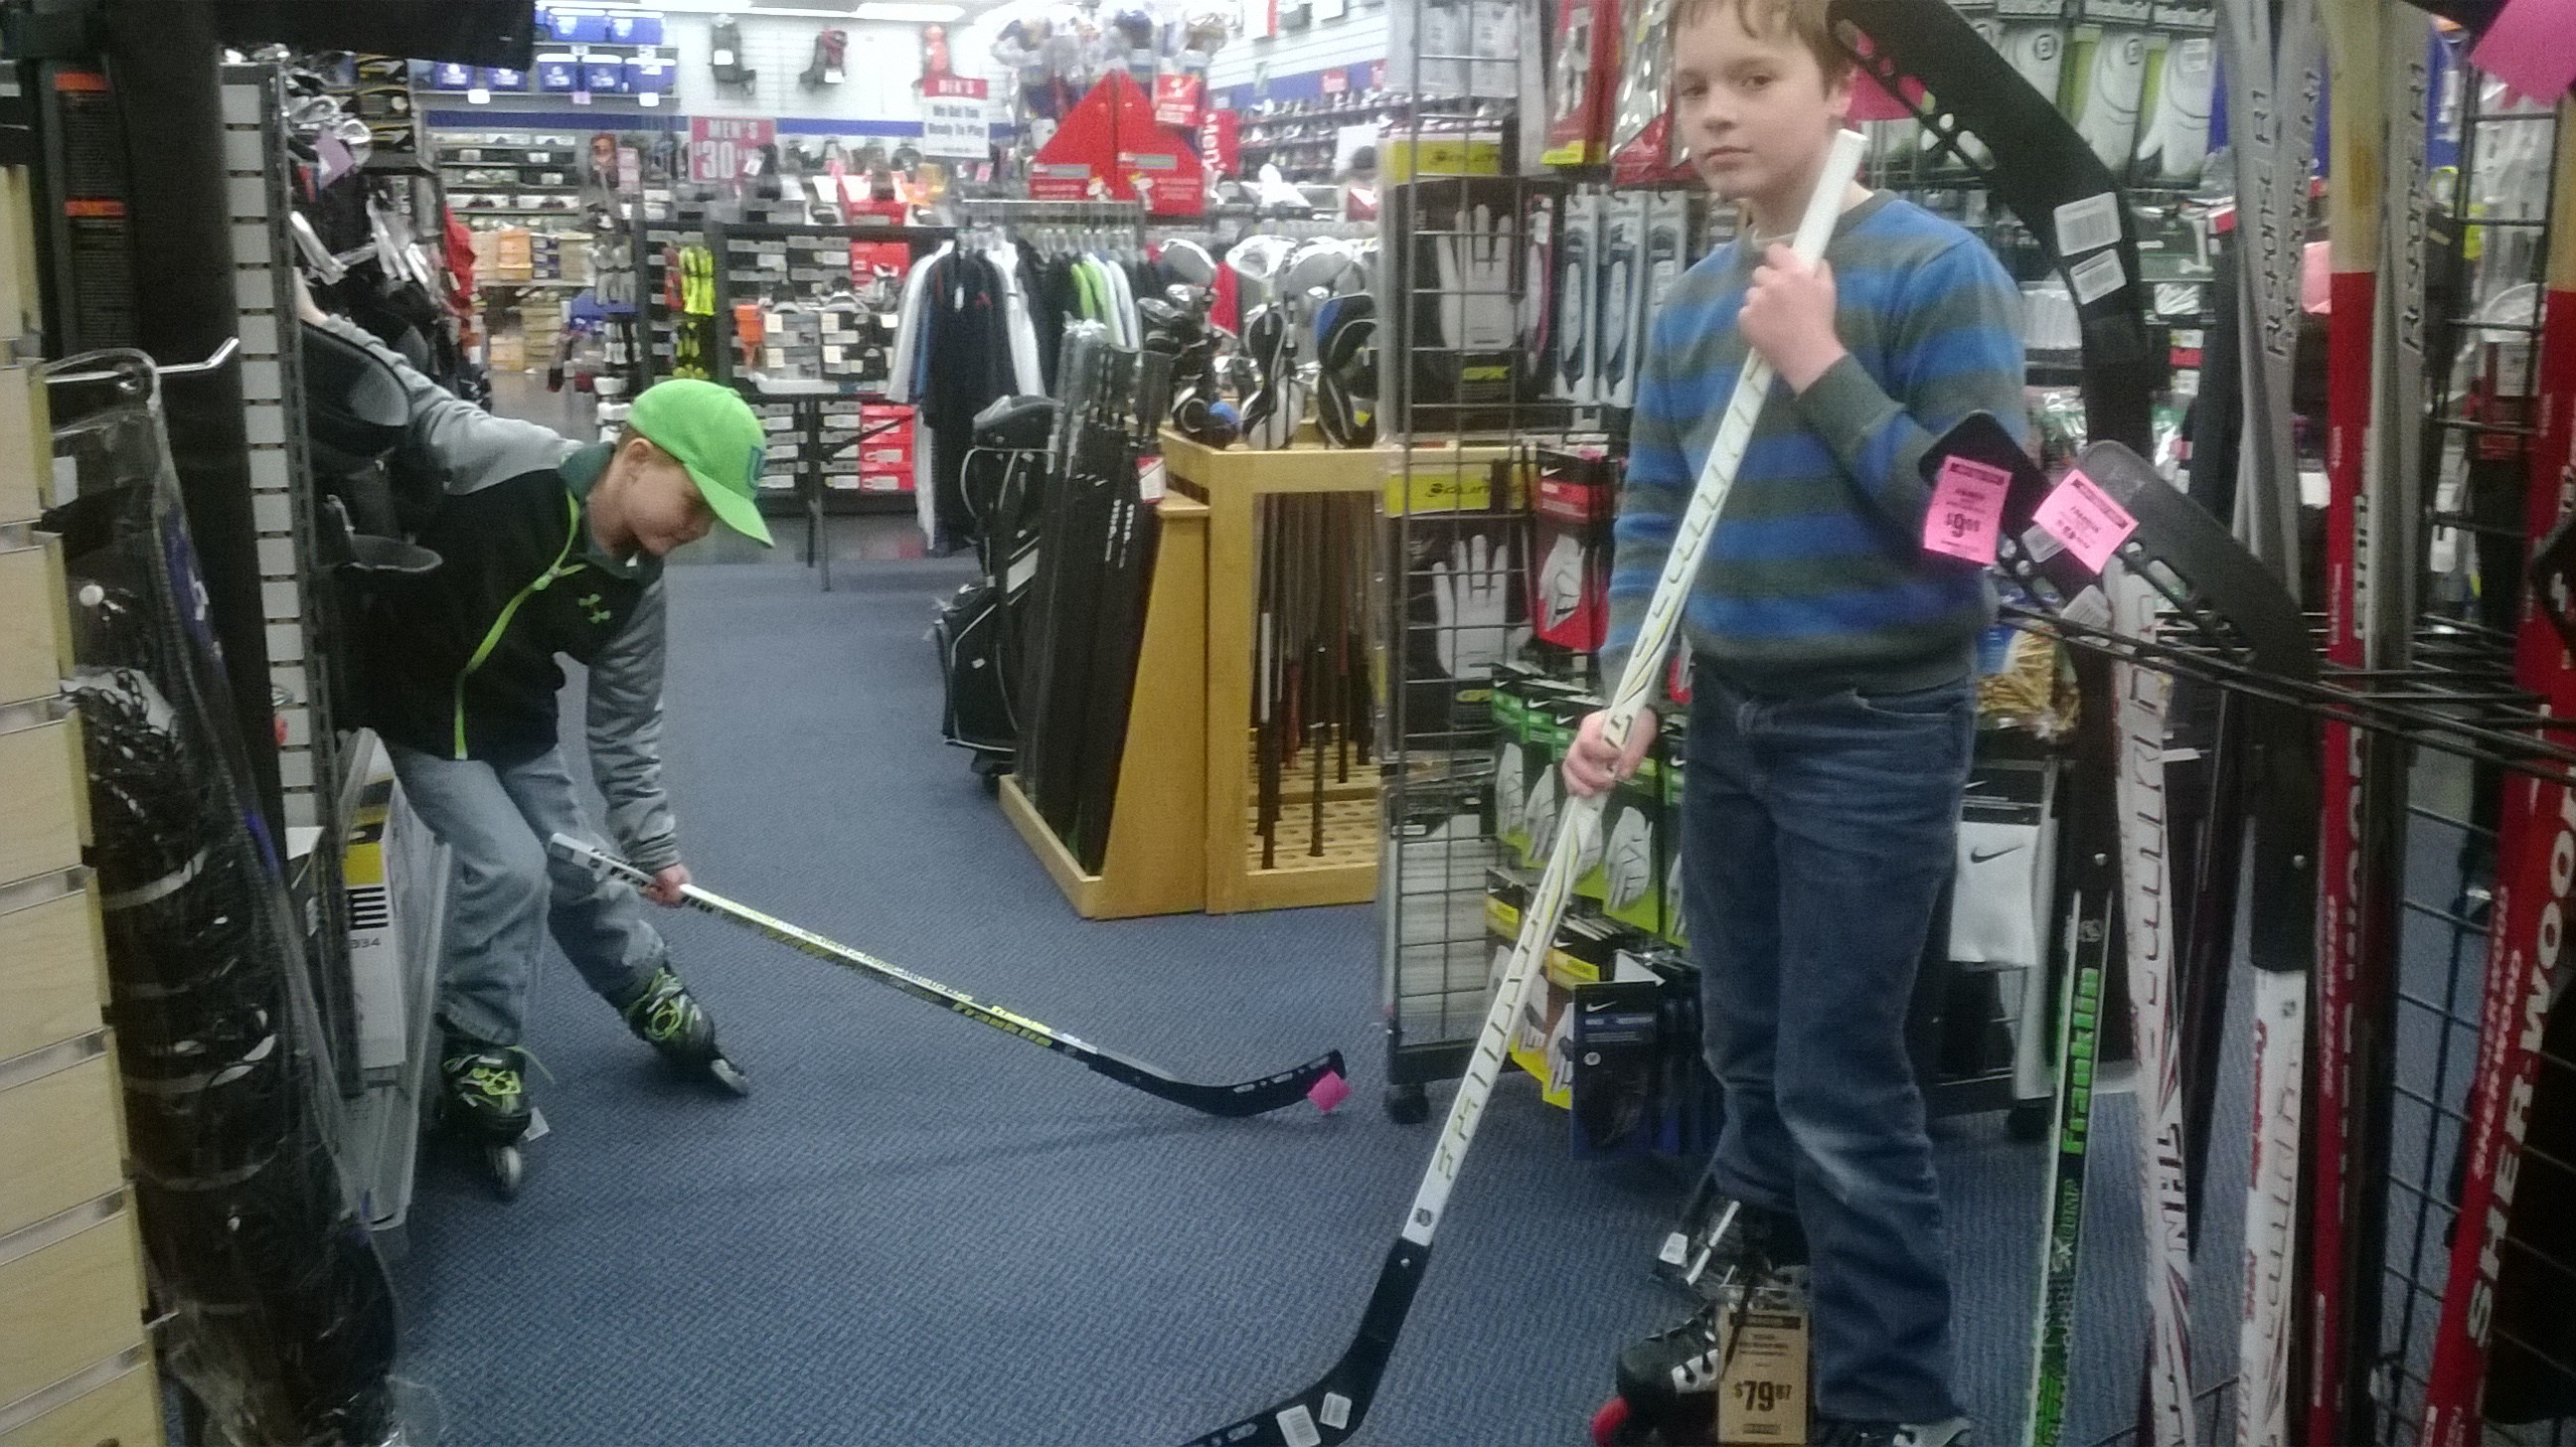 At Big 5 where they were very tolerant as we got some gear. This is a great store. Always good to us.